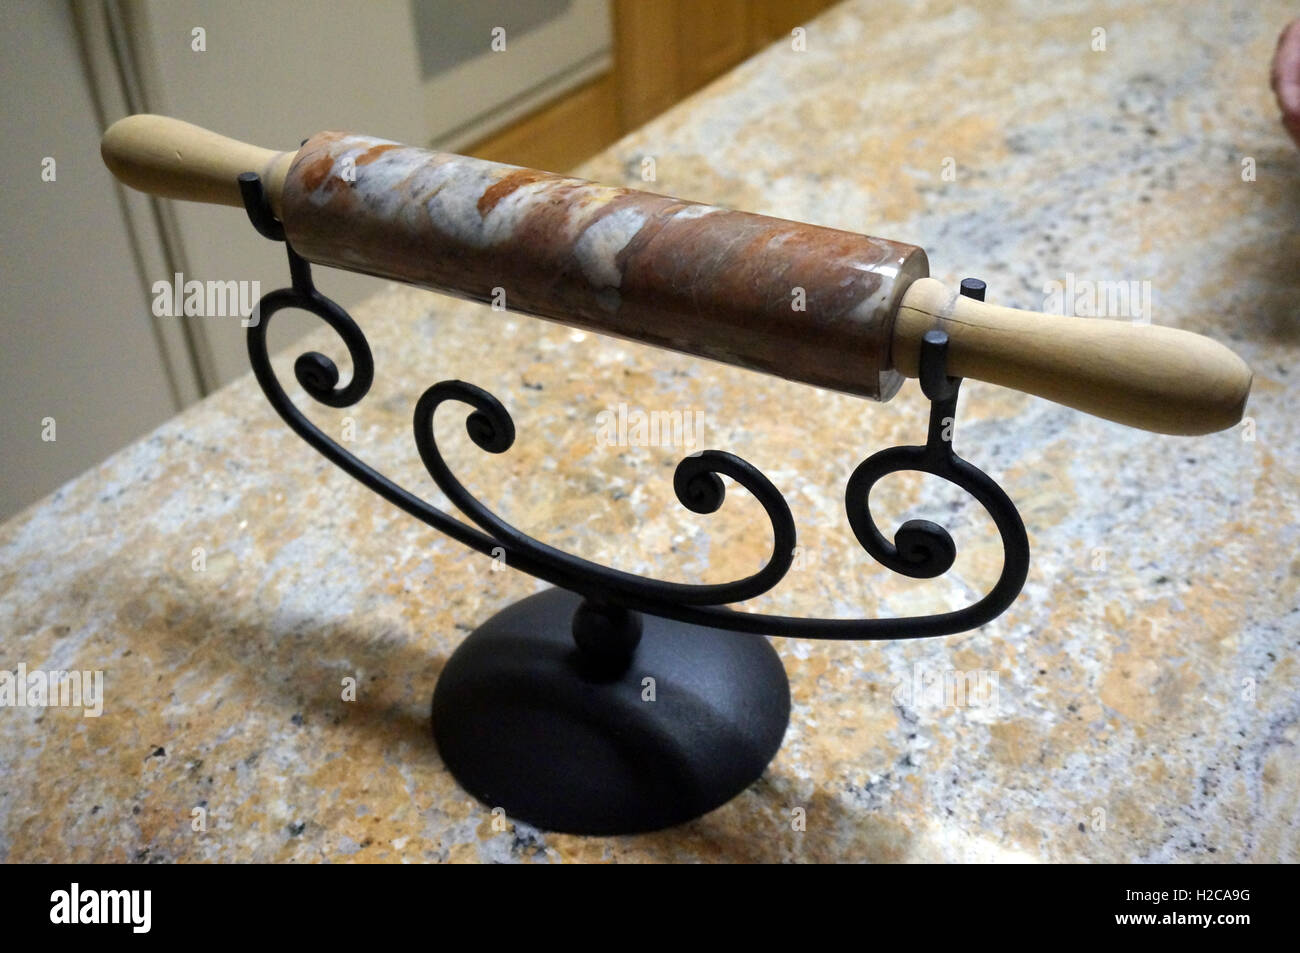 Decorative Marble Rolling Pin Displayed On A Wrought Iron